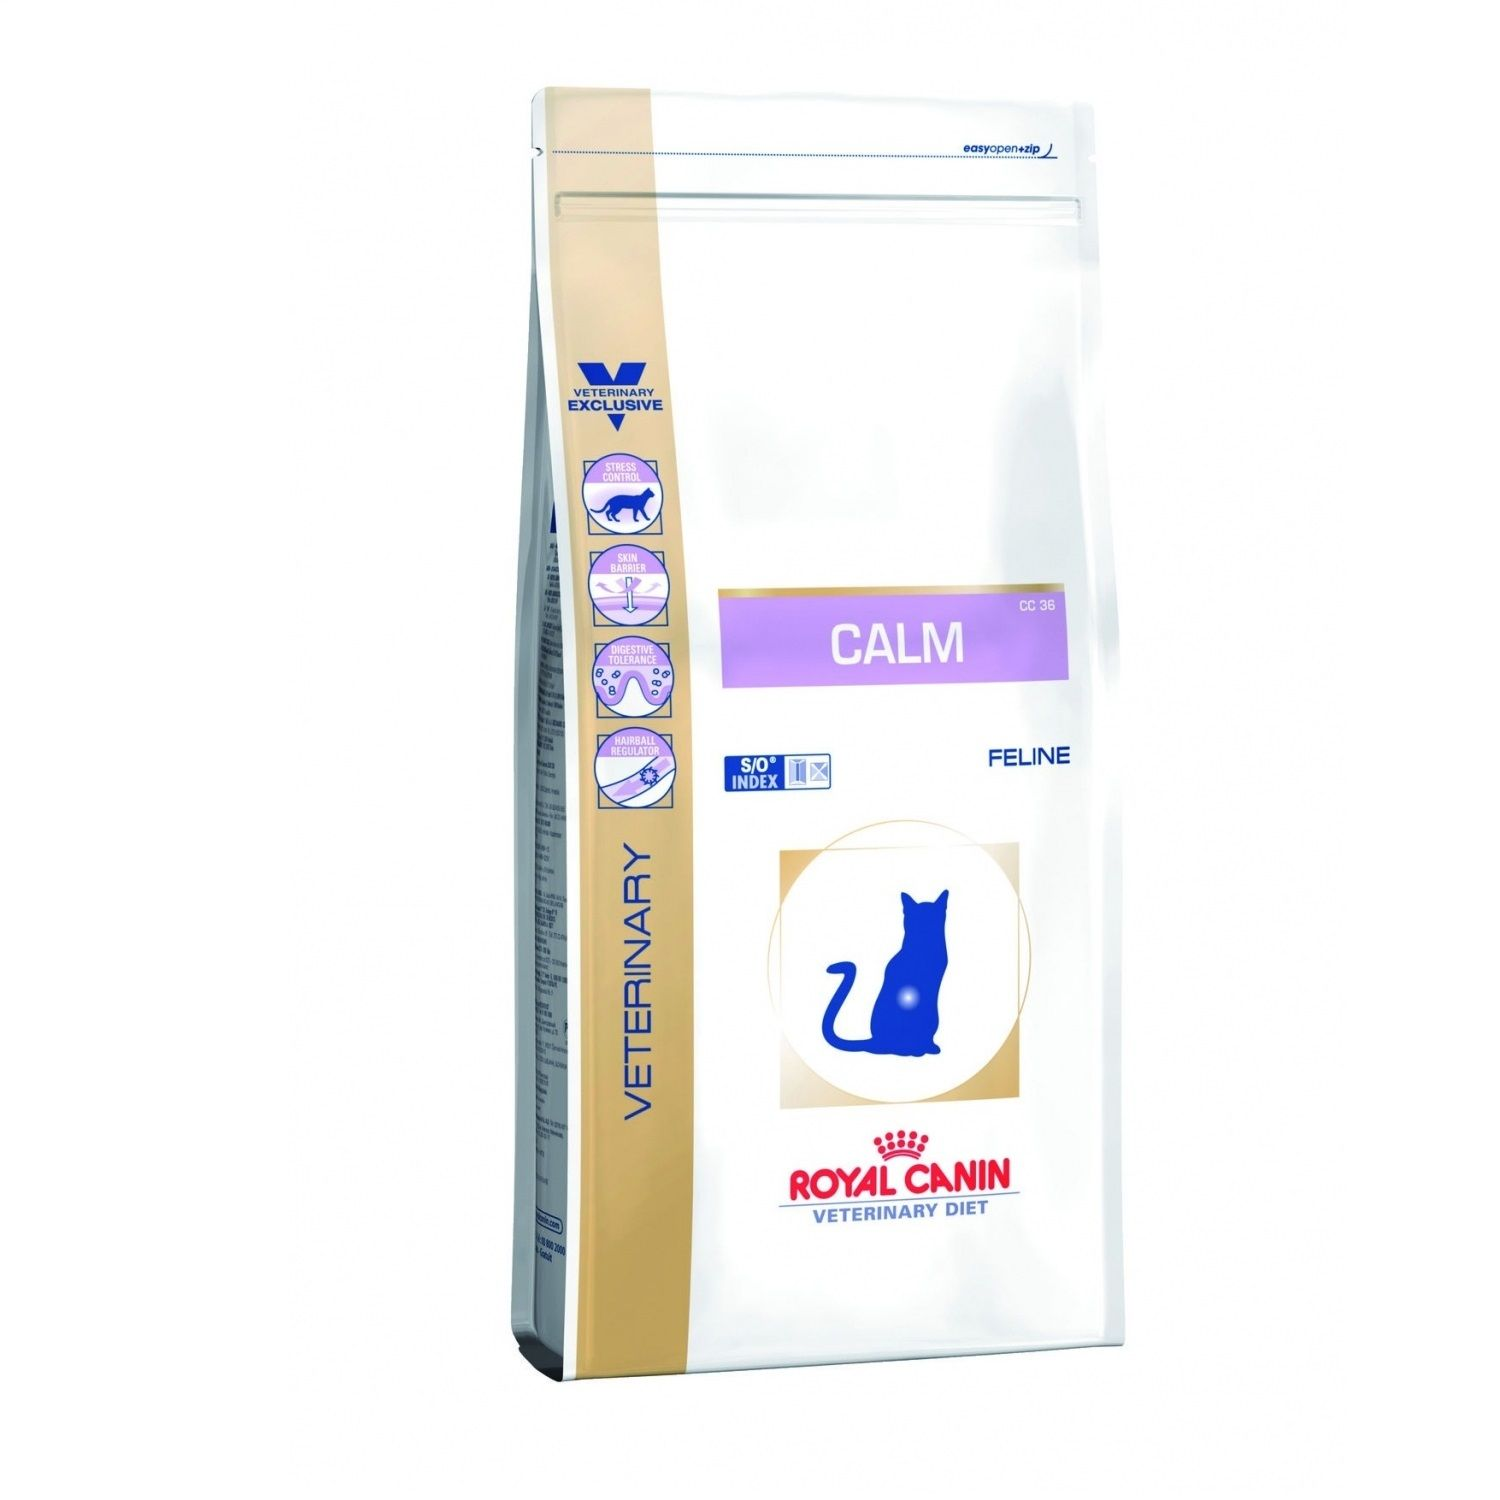 #Karma Royal Canin Veterinary Diet Cat Food Calm 4kg